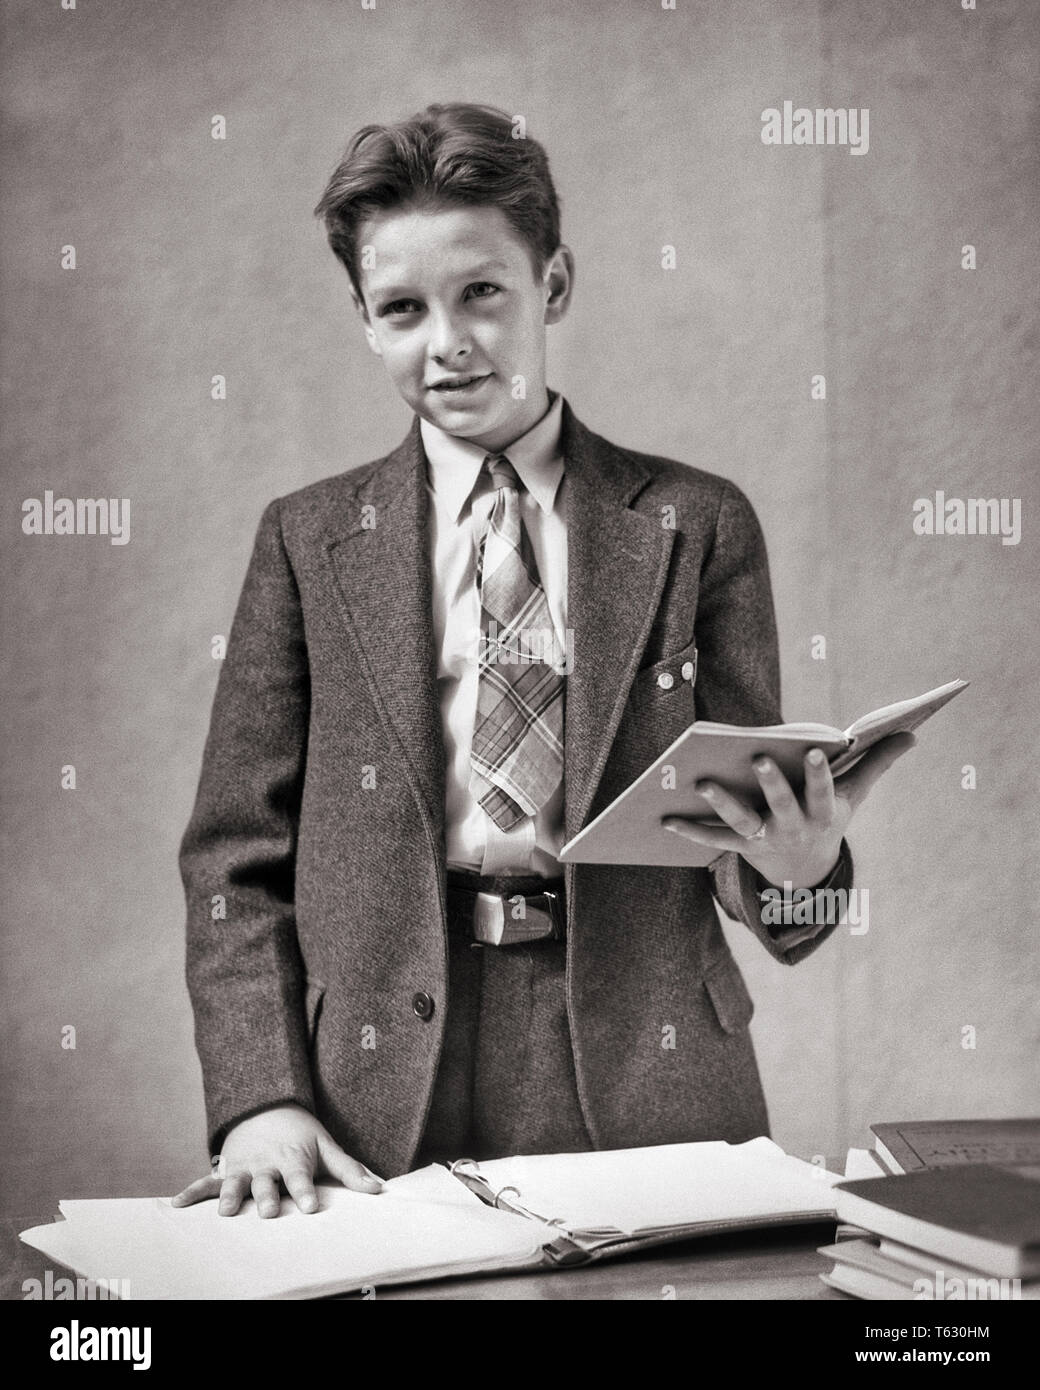 1930s BOY WEARING A SUIT AND TIE STANDING READING FROM NOTEBOOK RECITING AT SCHOOL - s3320 HAR001 HARS EYE CONTACT SCHOOLS SUIT AND TIE GRADE AND AUTHORITY OCCUPATIONS PRIMARY STYLISH K-12 CONFIDENT COOPERATION GRADE SCHOOL GROWTH JUVENILES PRE-TEEN PRE-TEEN BOY RECITING BLACK AND WHITE CAUCASIAN ETHNICITY HAR001 OLD FASHIONED PUBLIC SPEAKING - Stock Image